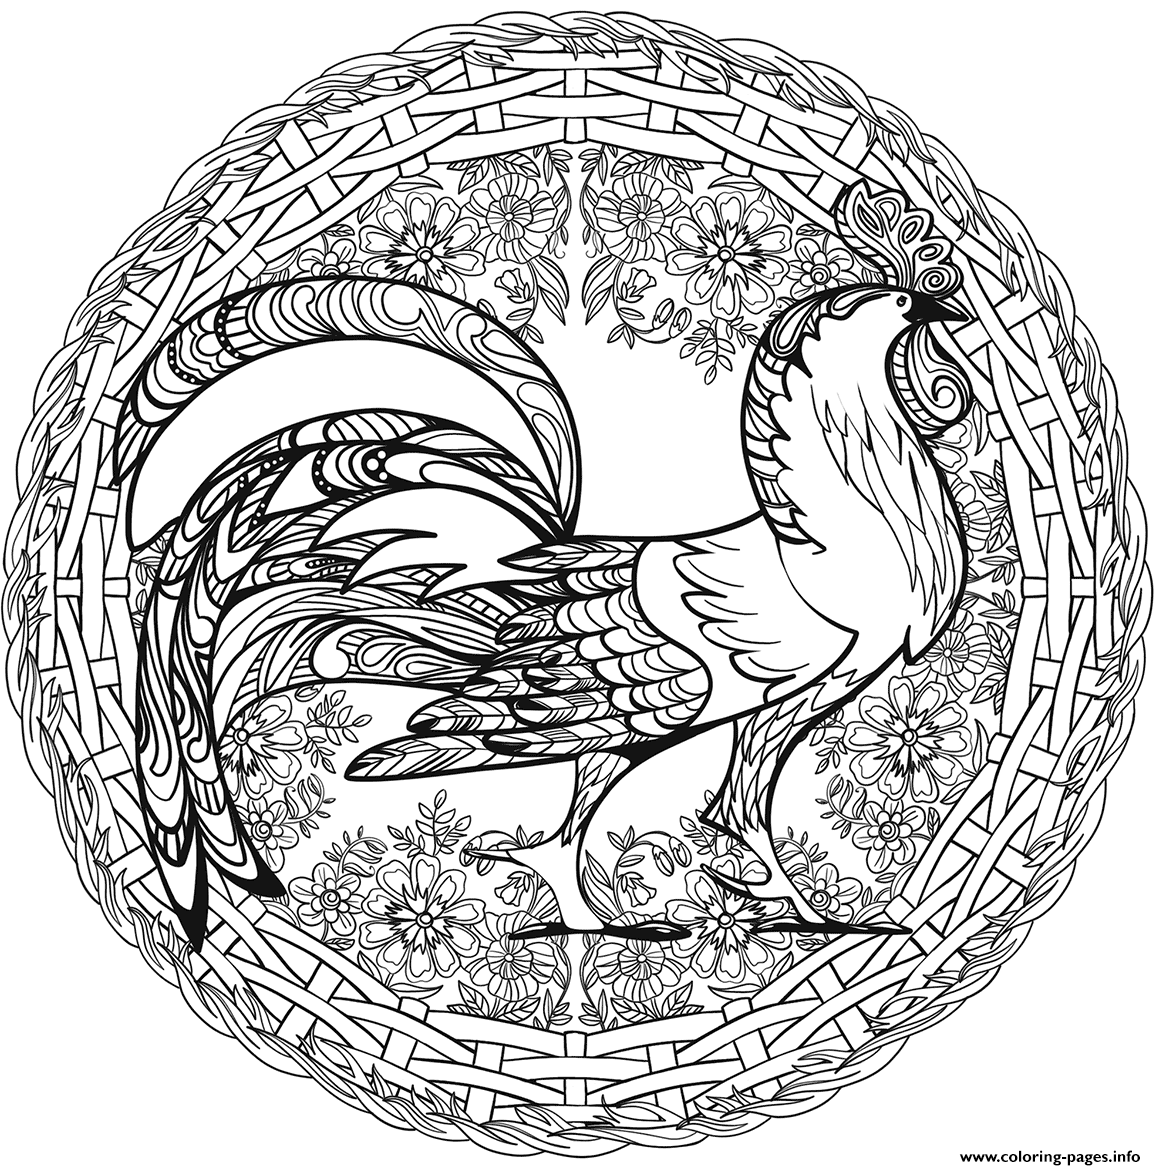 Cock Mandala Animal coloring pages